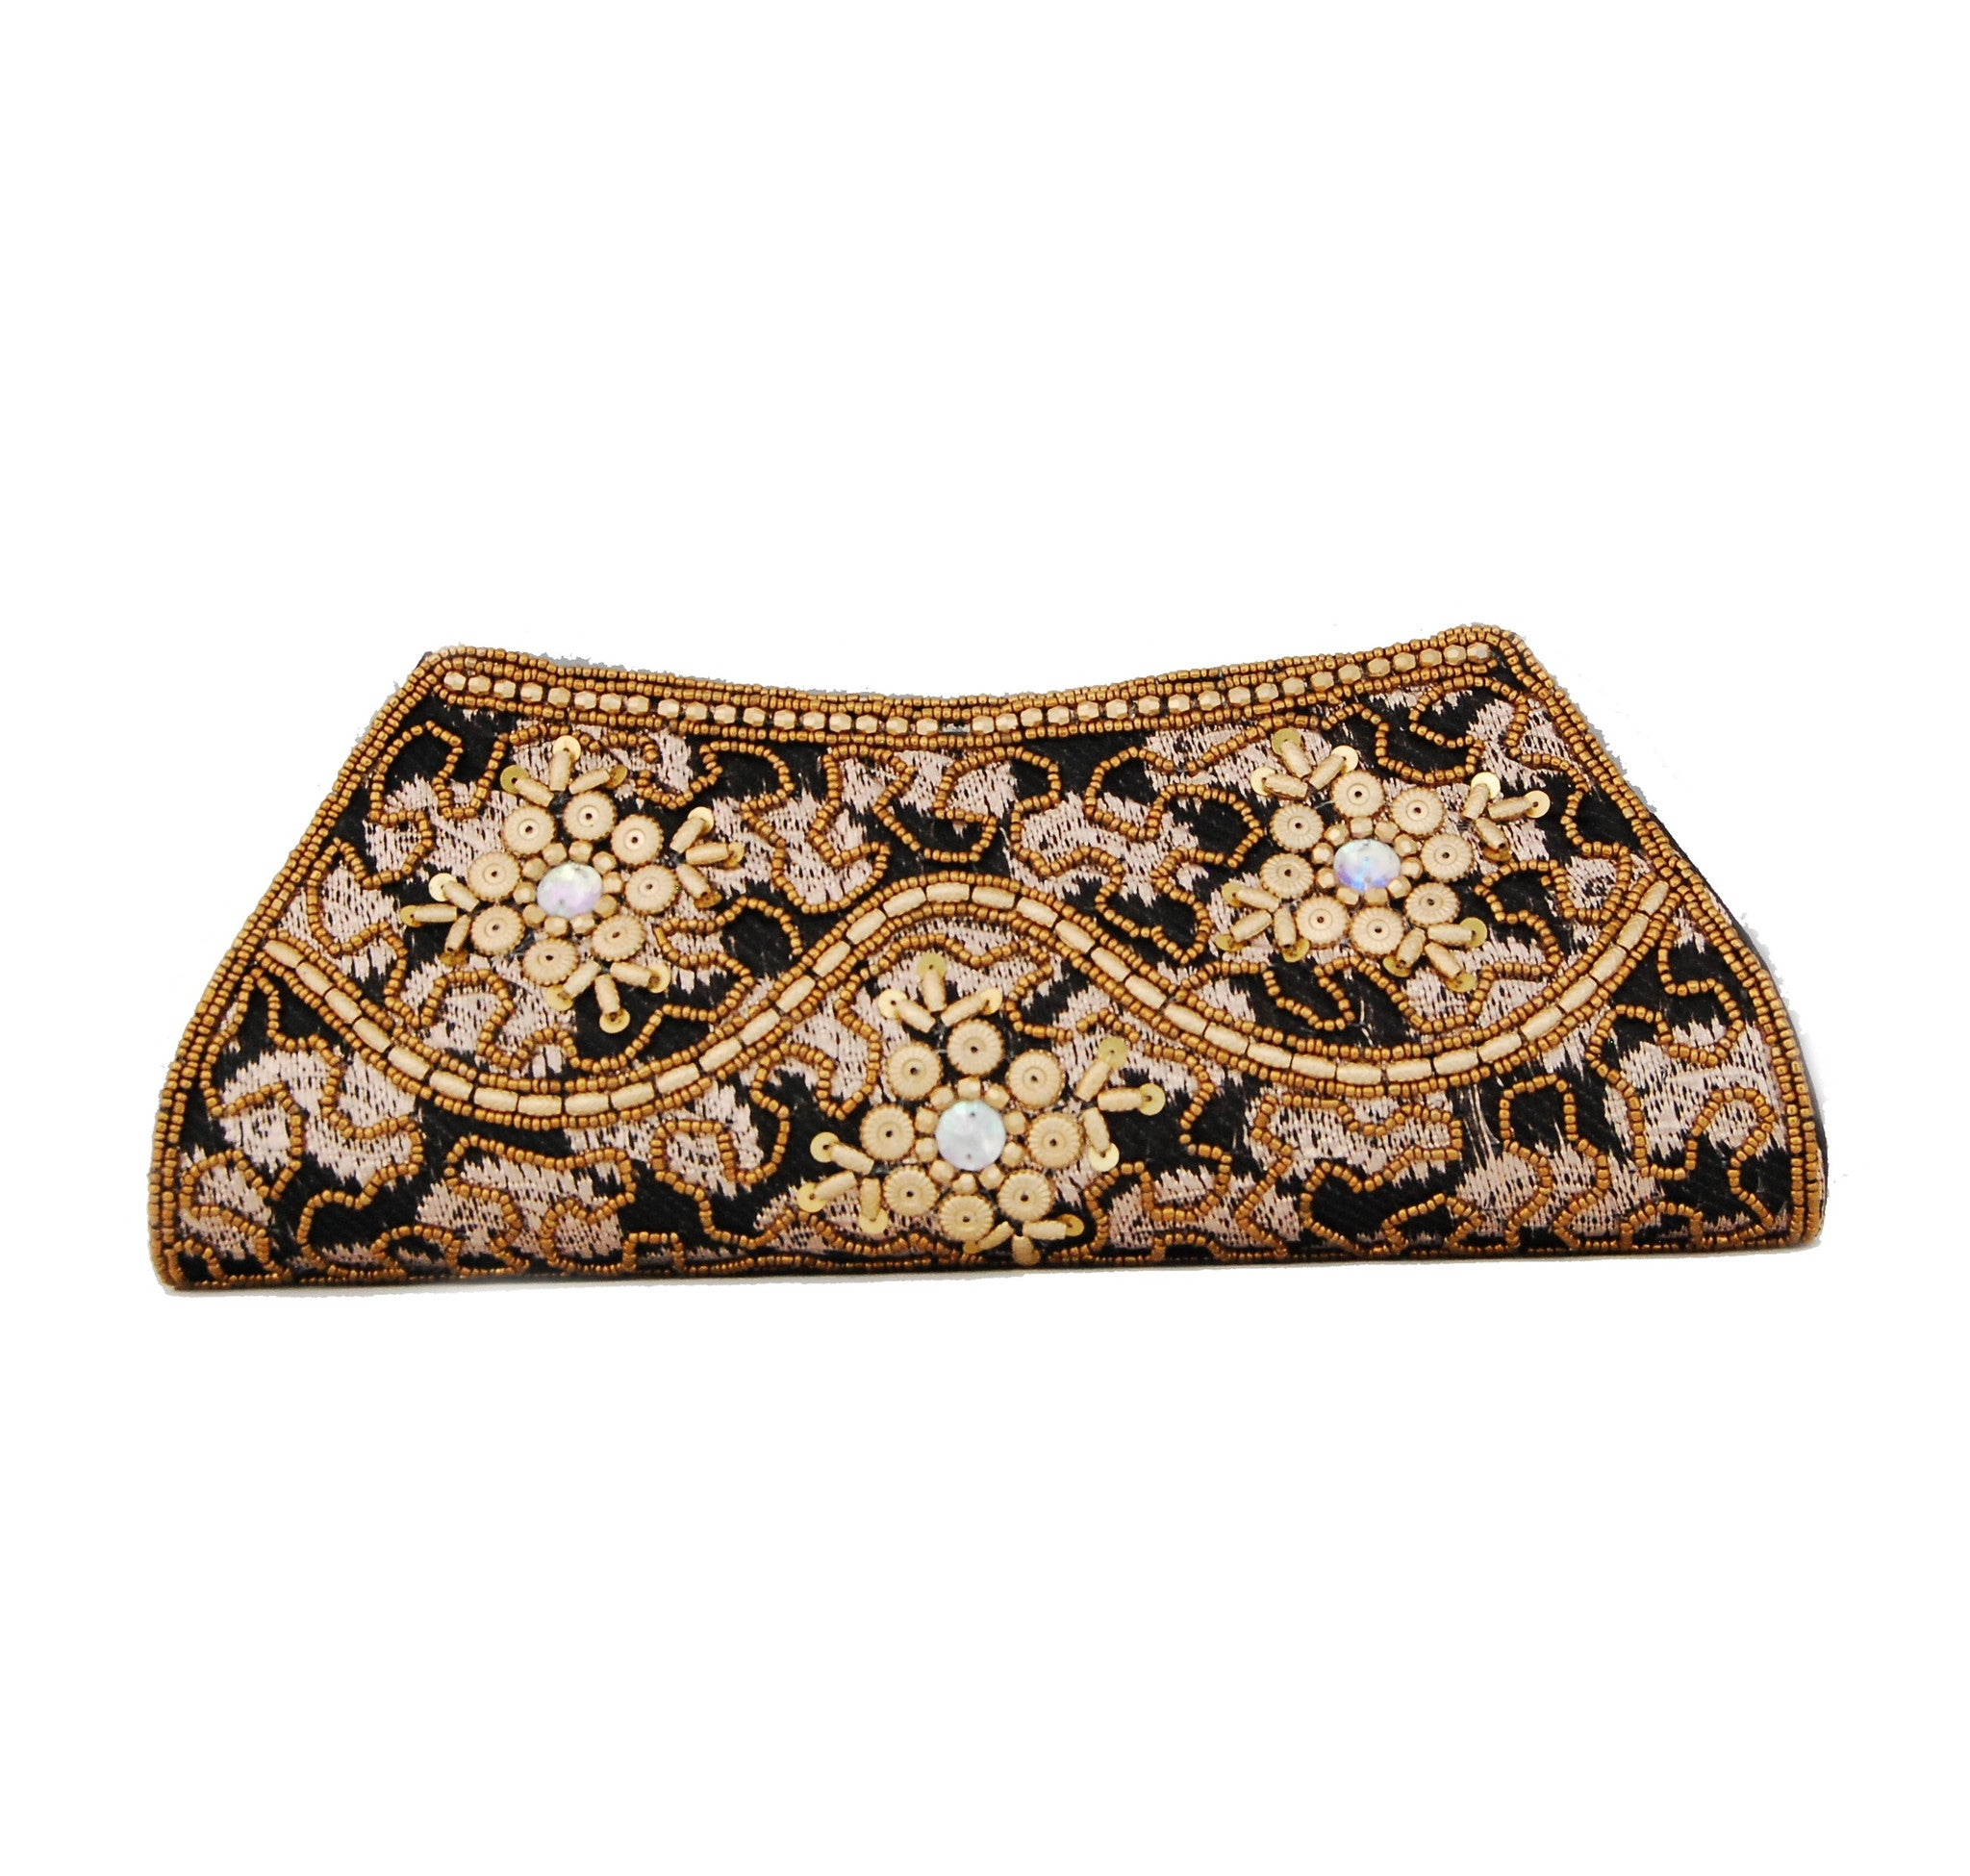 Black color Dupion Silk Clutch Bag with beads and Brocade Fabric - Boutique4India Inc.